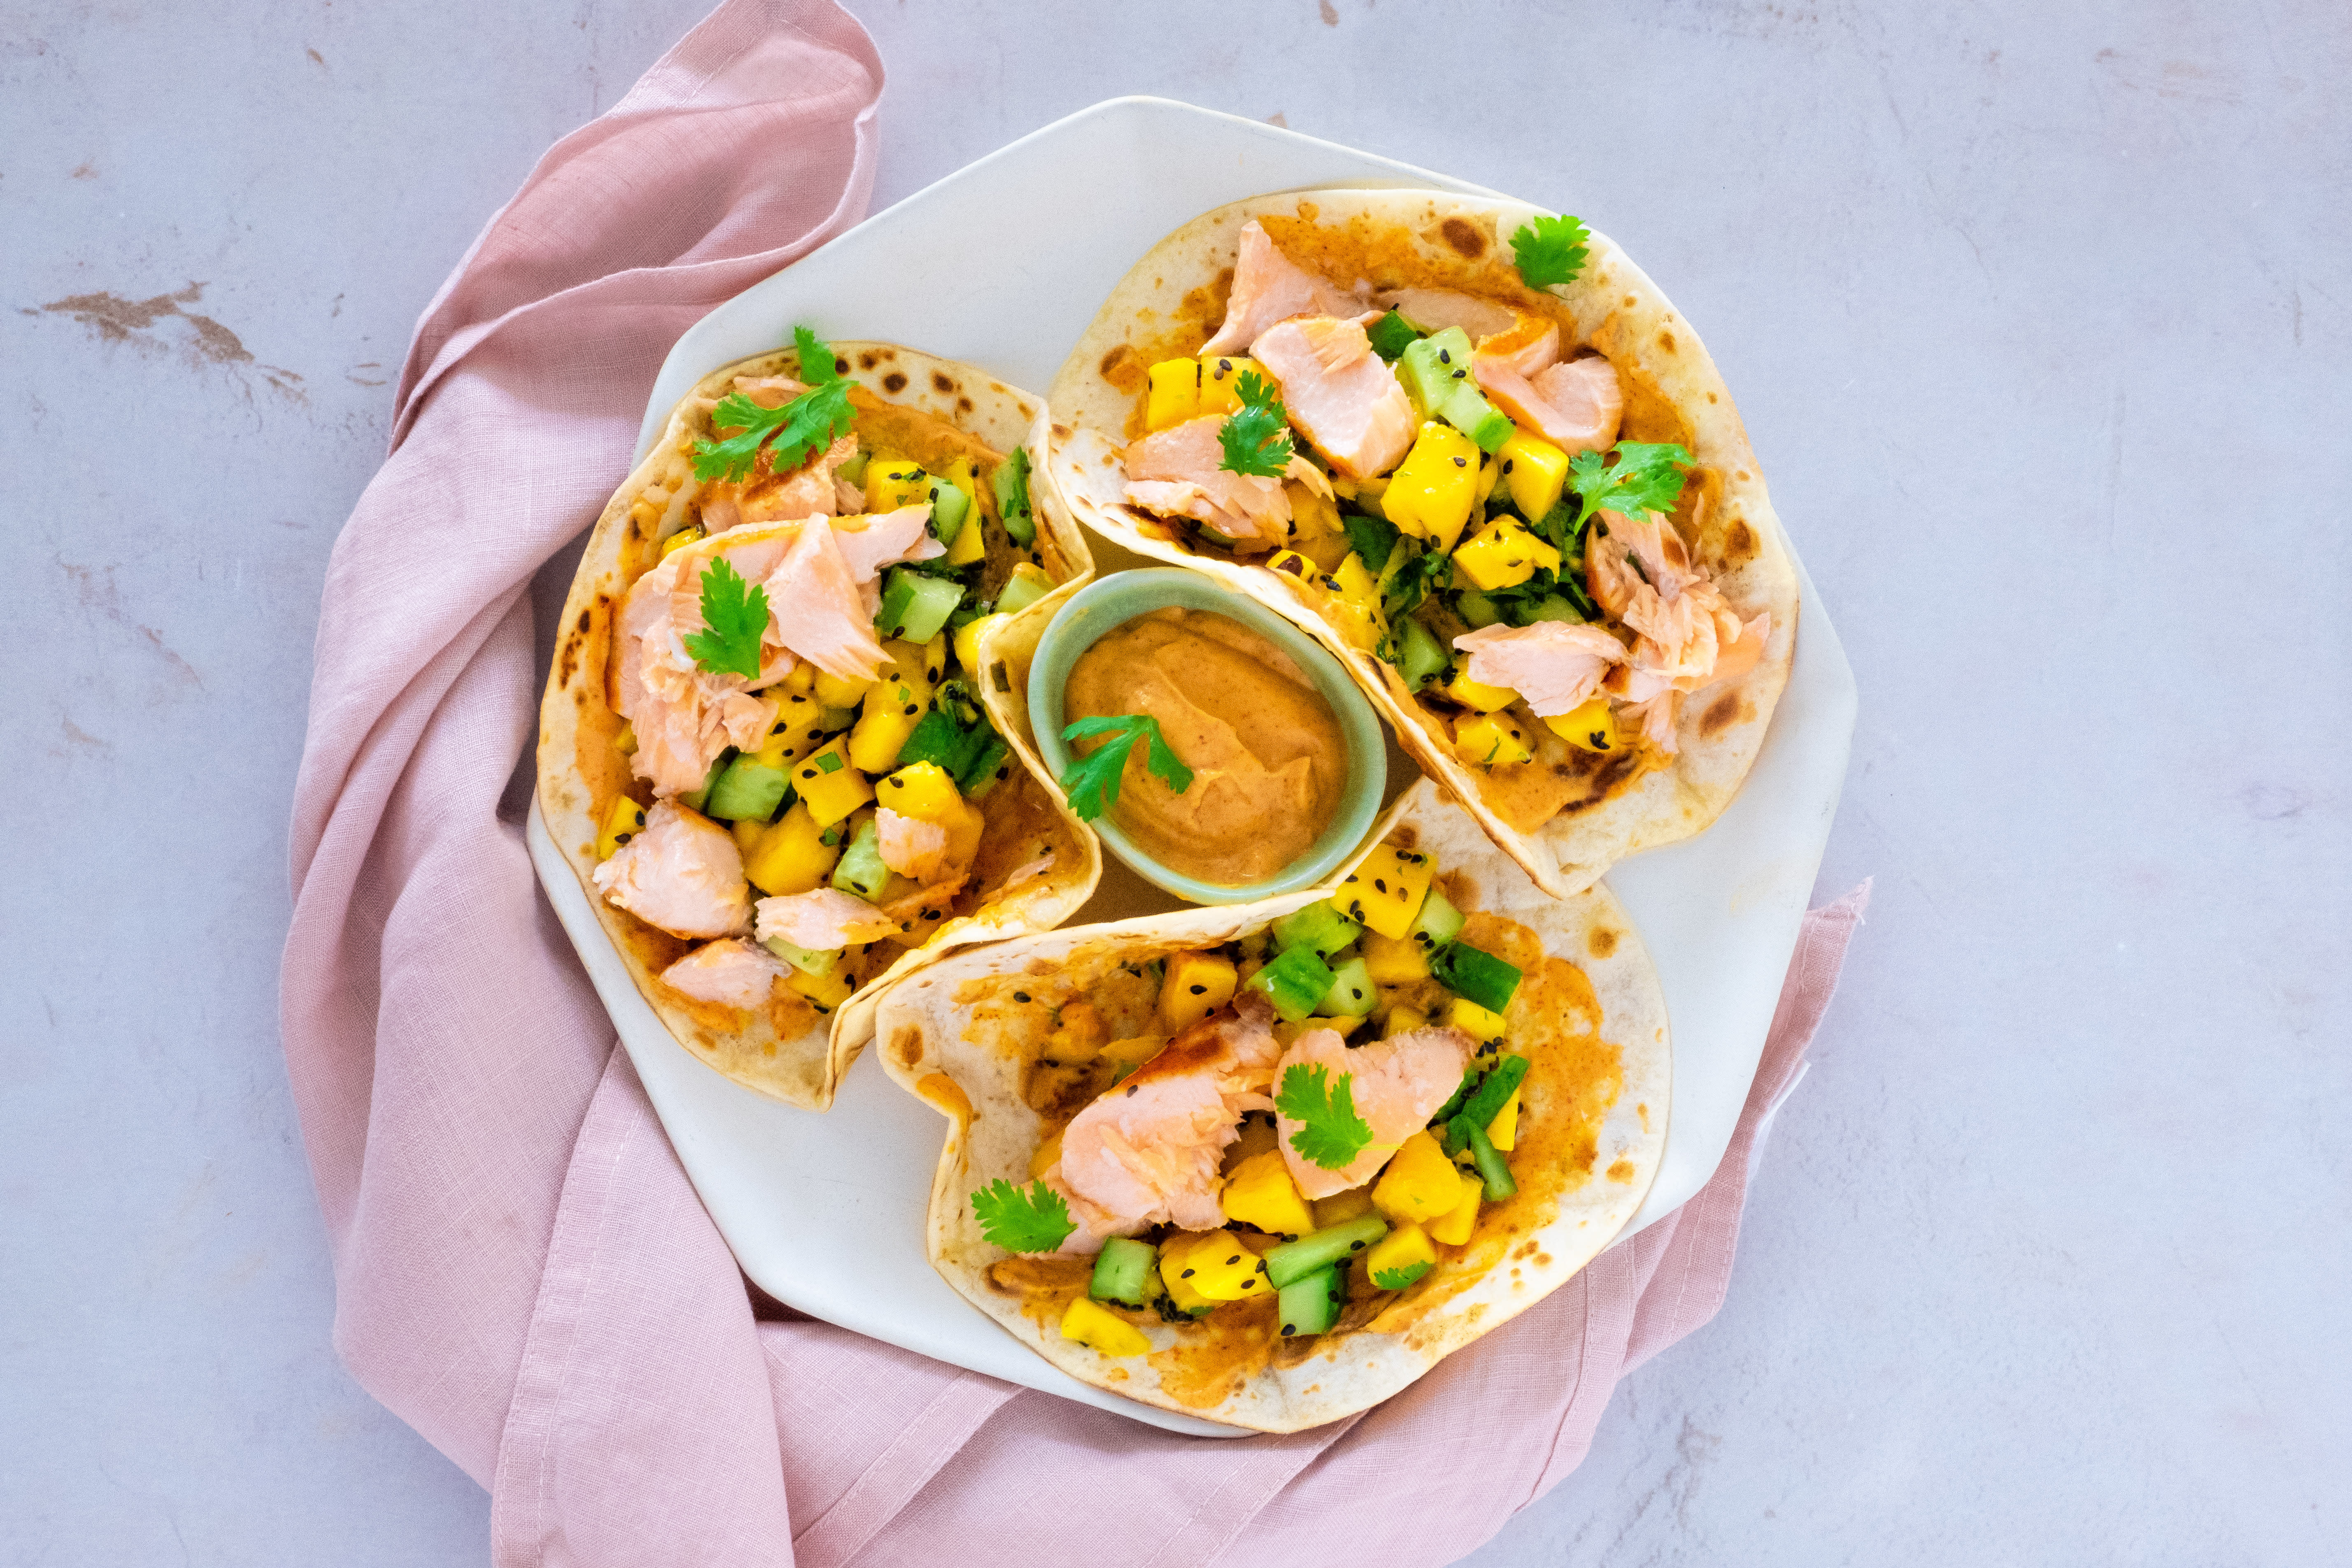 Salmon Tacos with Mango Salsa and Chipotle Cream